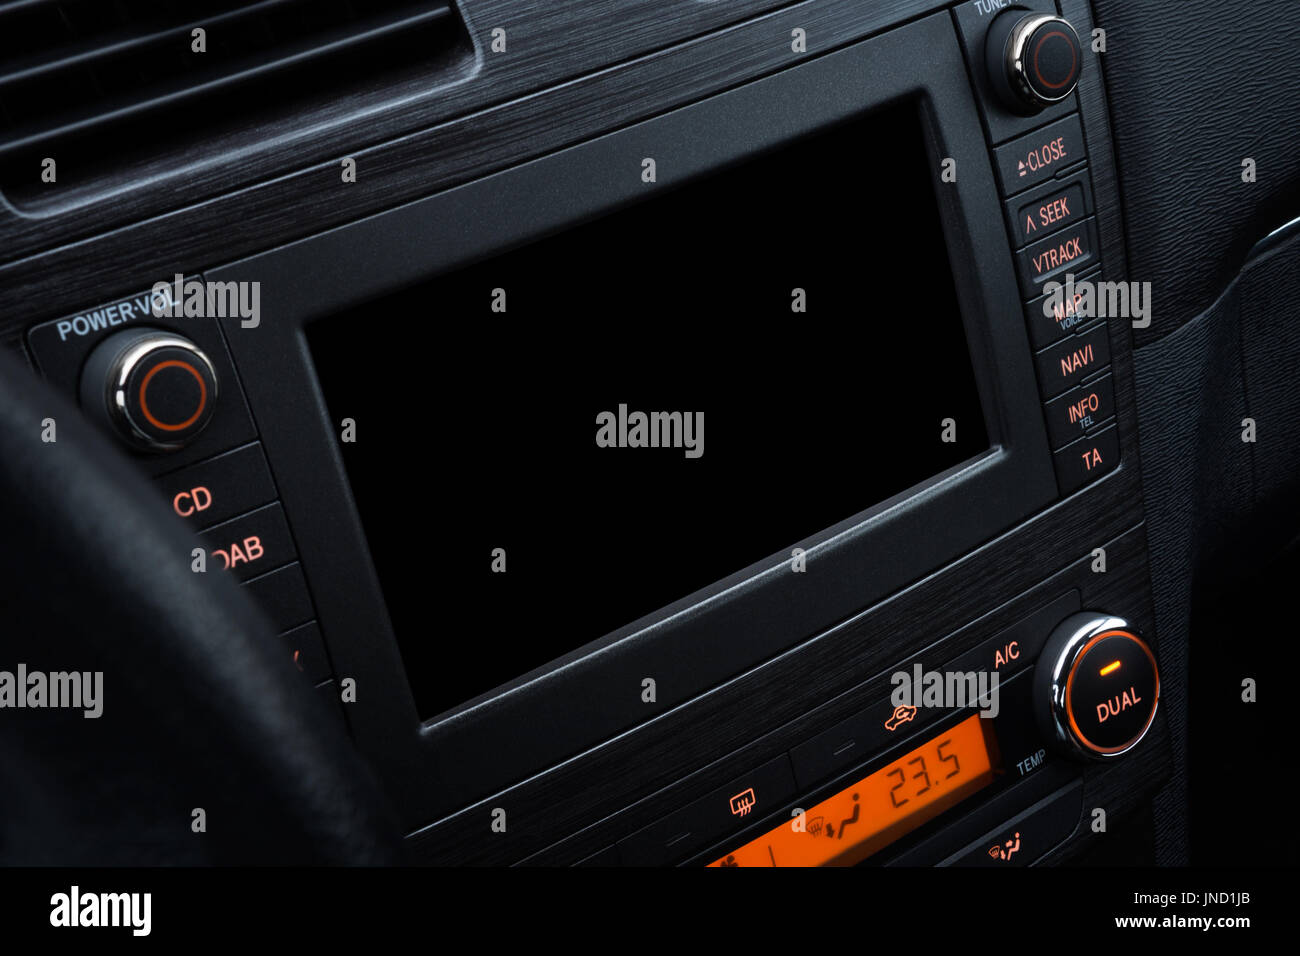 Modern car interior design; Car console with board computer, touch screen for multimedia and navigation system mockup. Closeup view - Stock Image